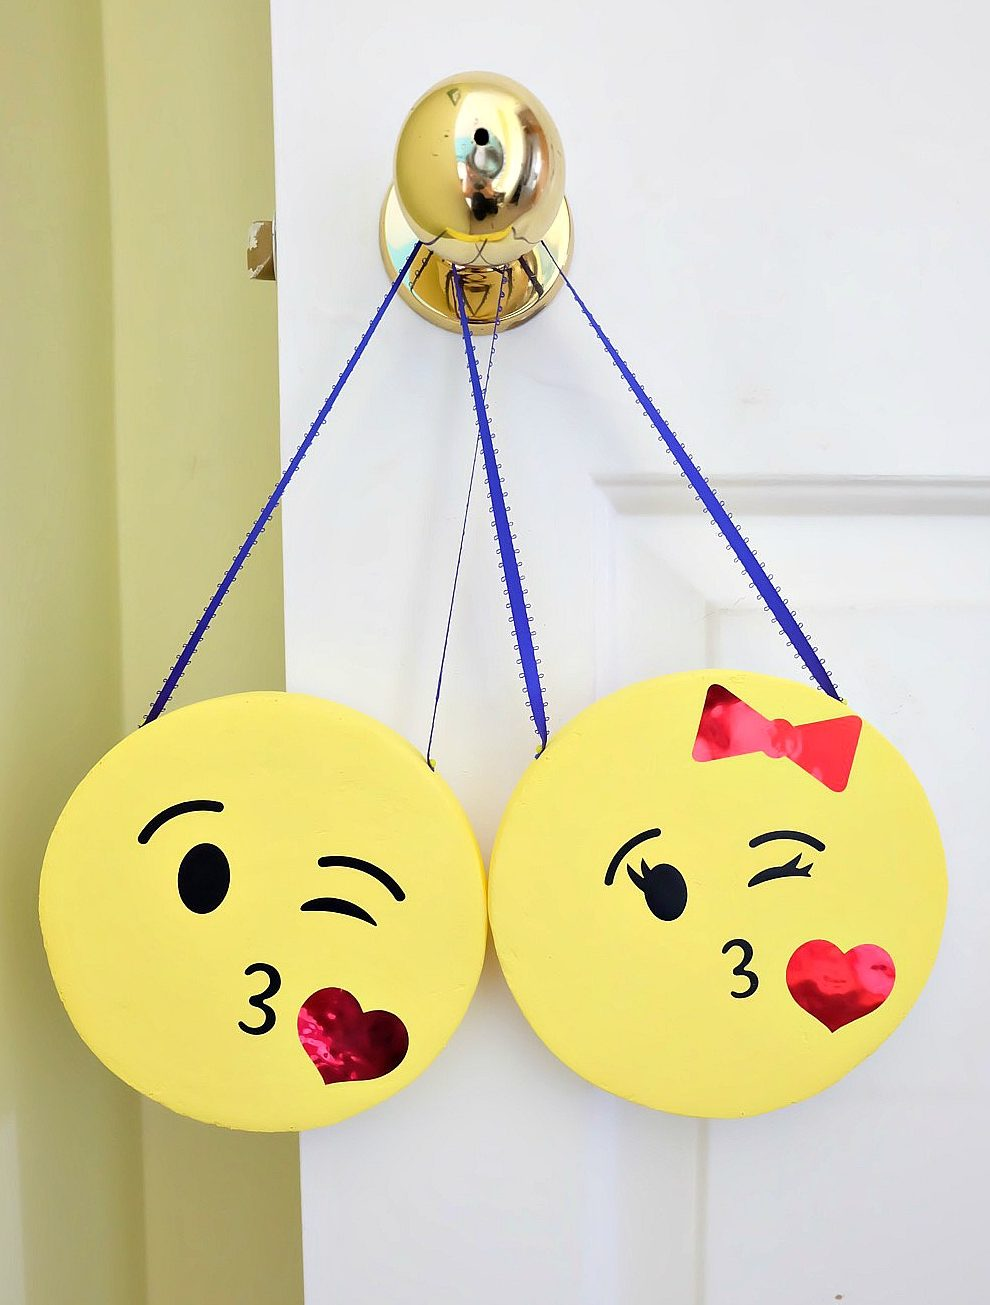 The perfect DIY project to complete an emoji themed kids room or an emoji birthday party! These DIY Emoji Door Hangers are easy to make and a fun kids craft. Use your Cricut to cut the his and her kissy face emoji faces and apply them to painted styrofoam disks. #CricutMade #Emoji #DIY #KidsCrafts